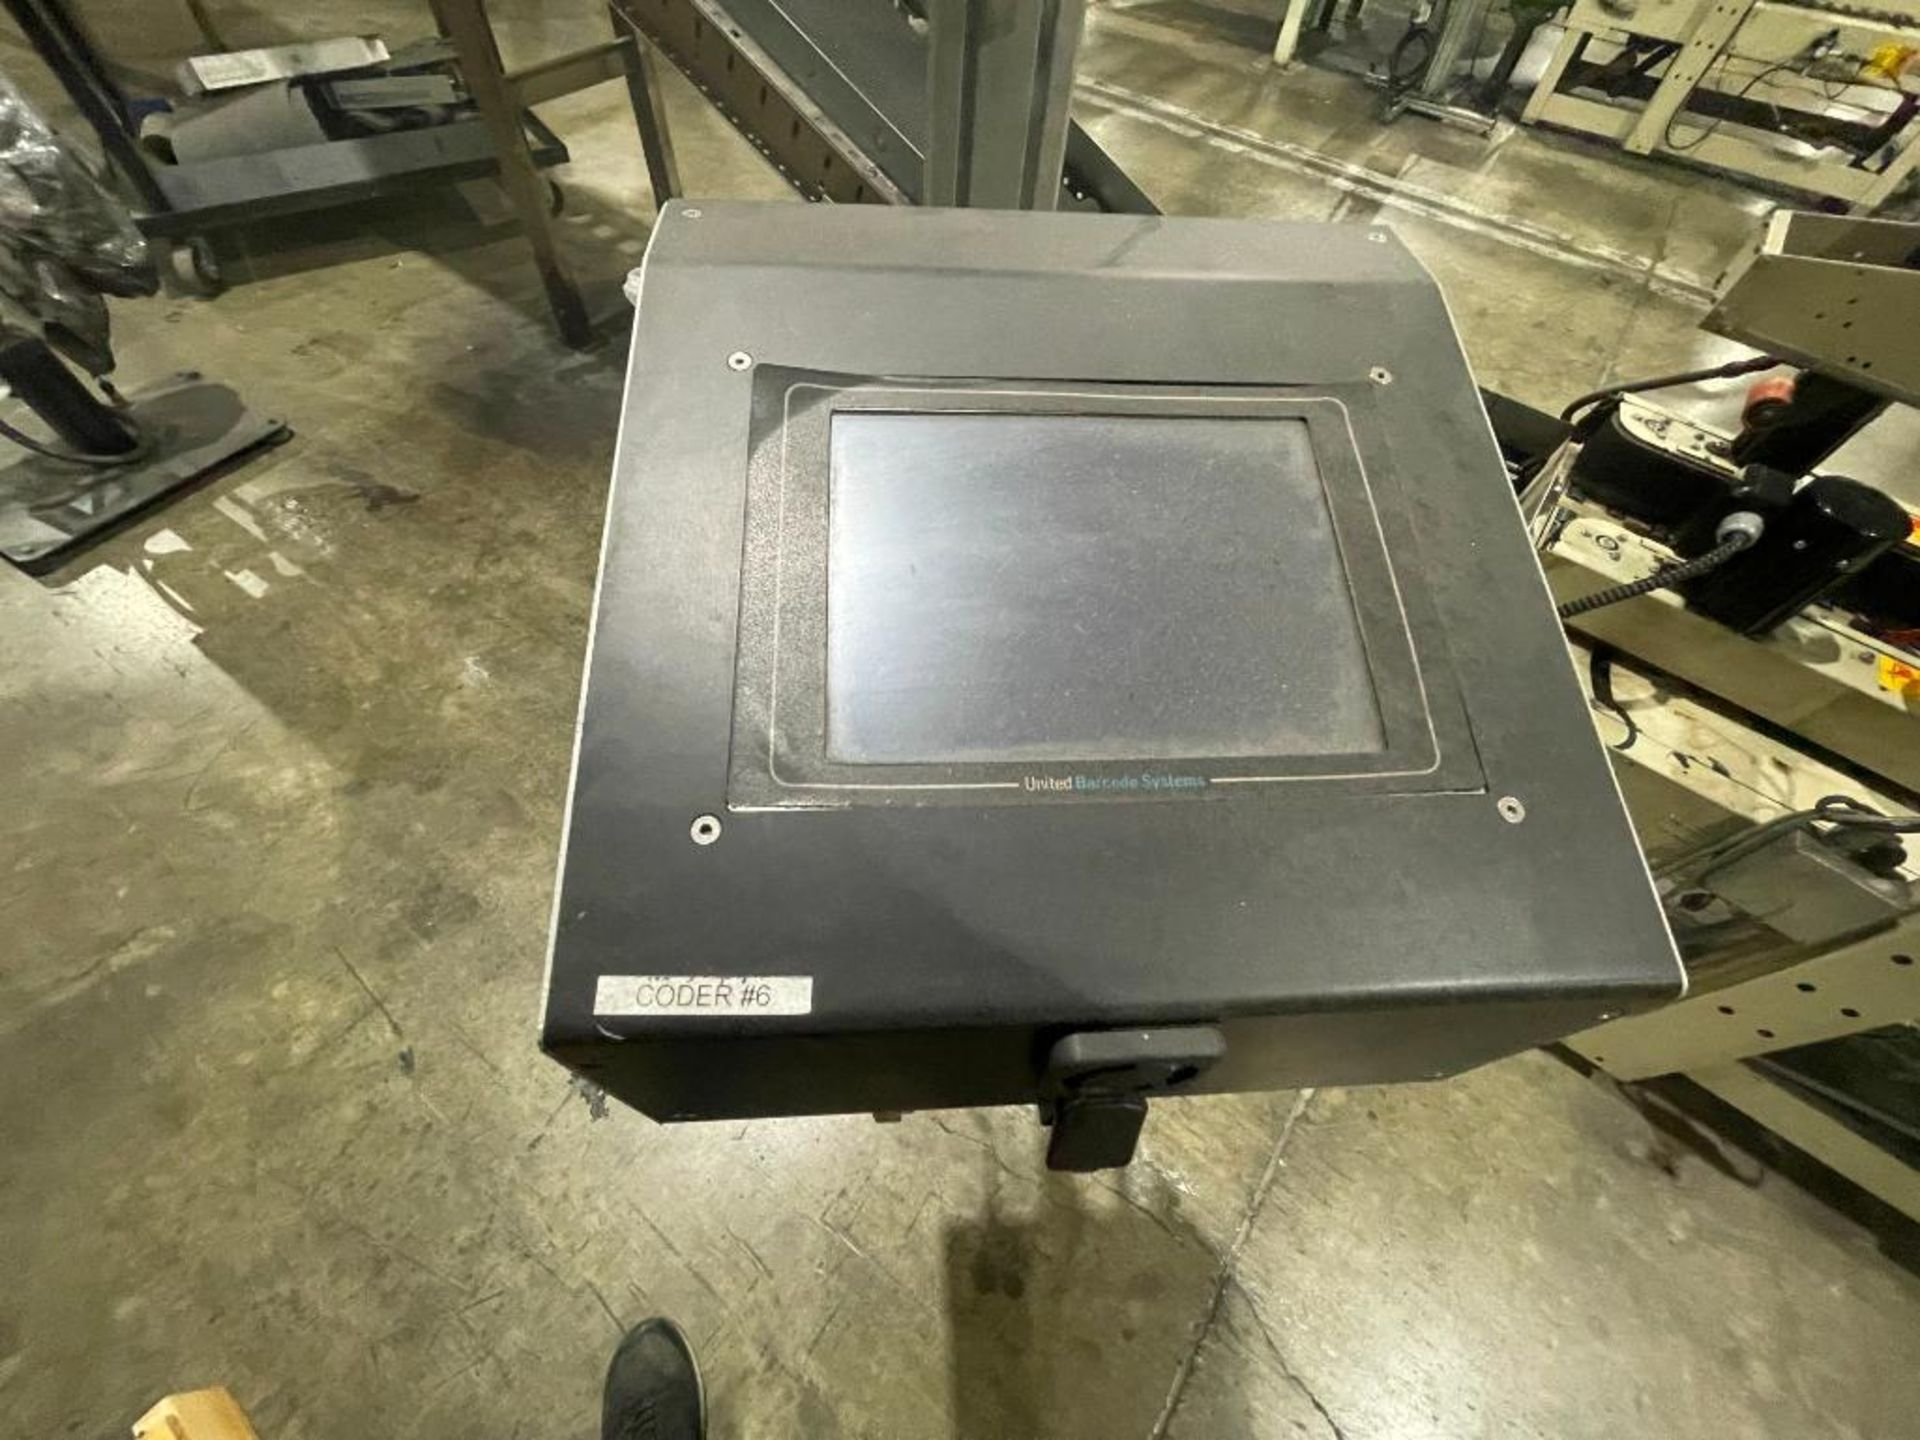 Automatic Printing Systems case coder - Image 2 of 15